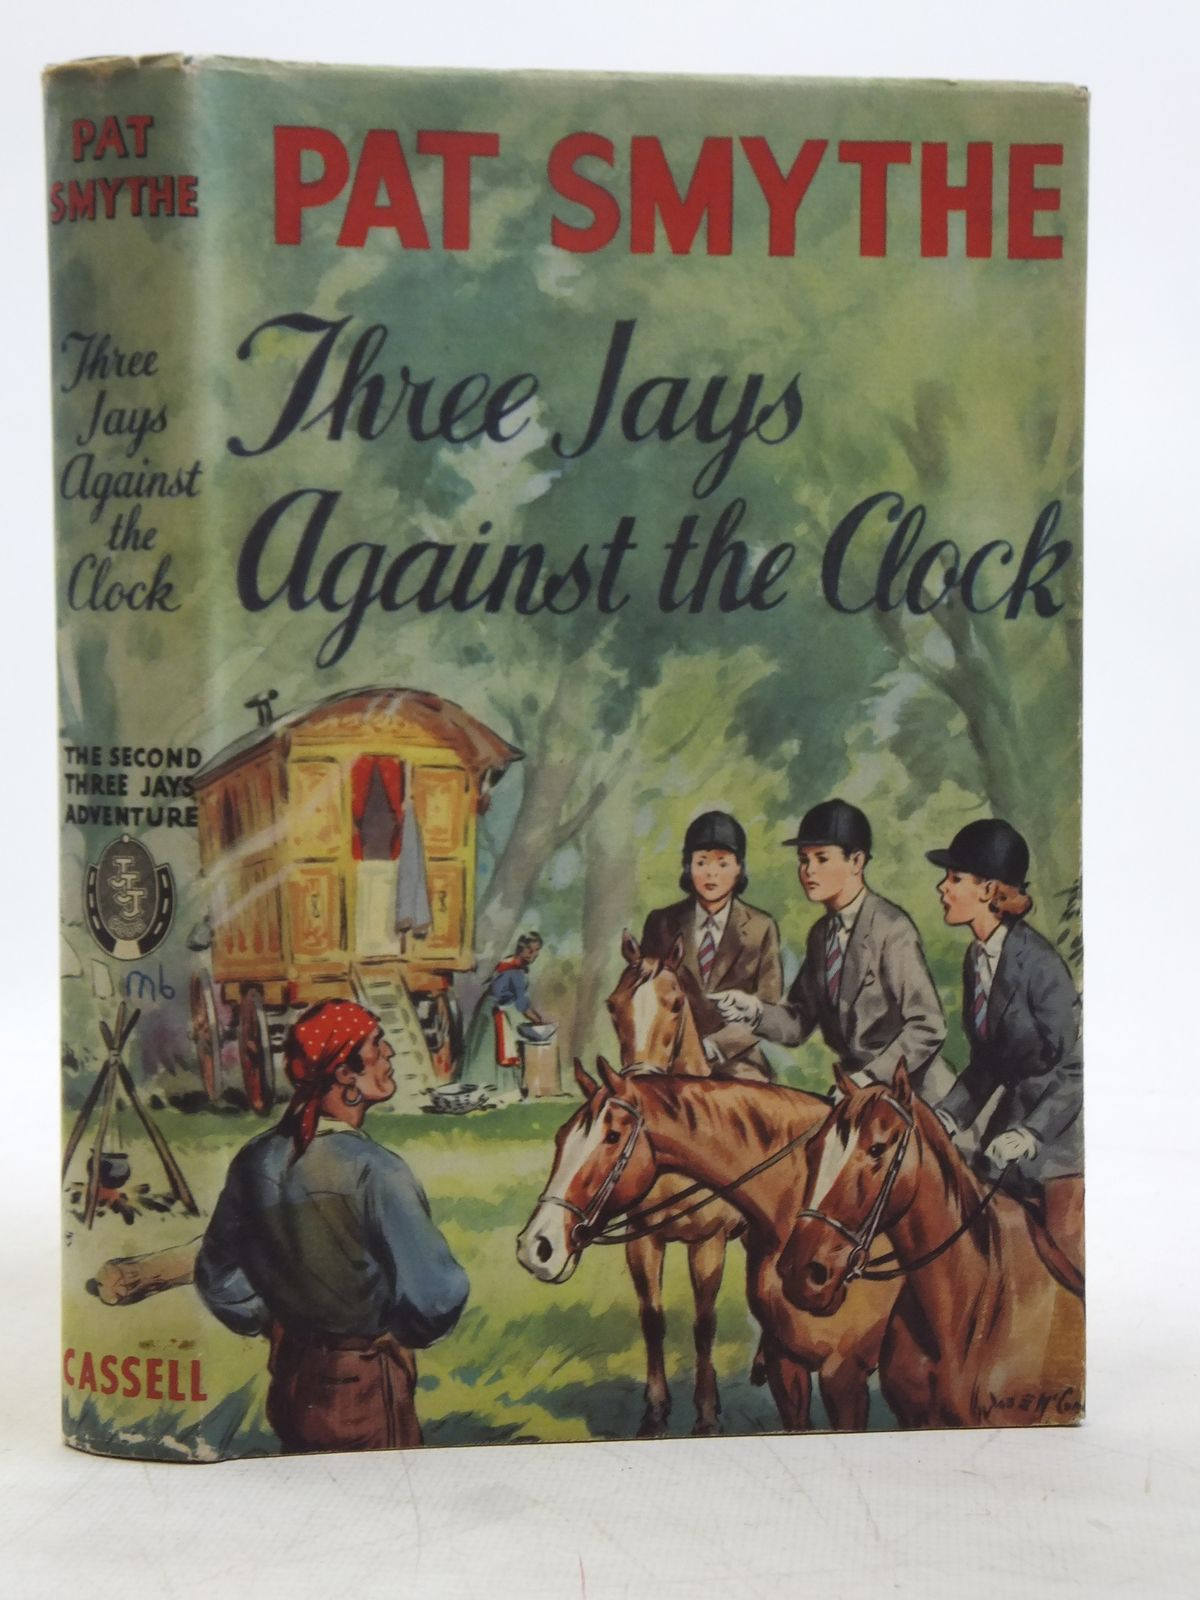 Photo of THREE JAYS AGAINST THE CLOCK written by Smythe, Pat illustrated by McConnell, J.E. published by Cassell & Co. Ltd. (STOCK CODE: 2119276)  for sale by Stella & Rose's Books